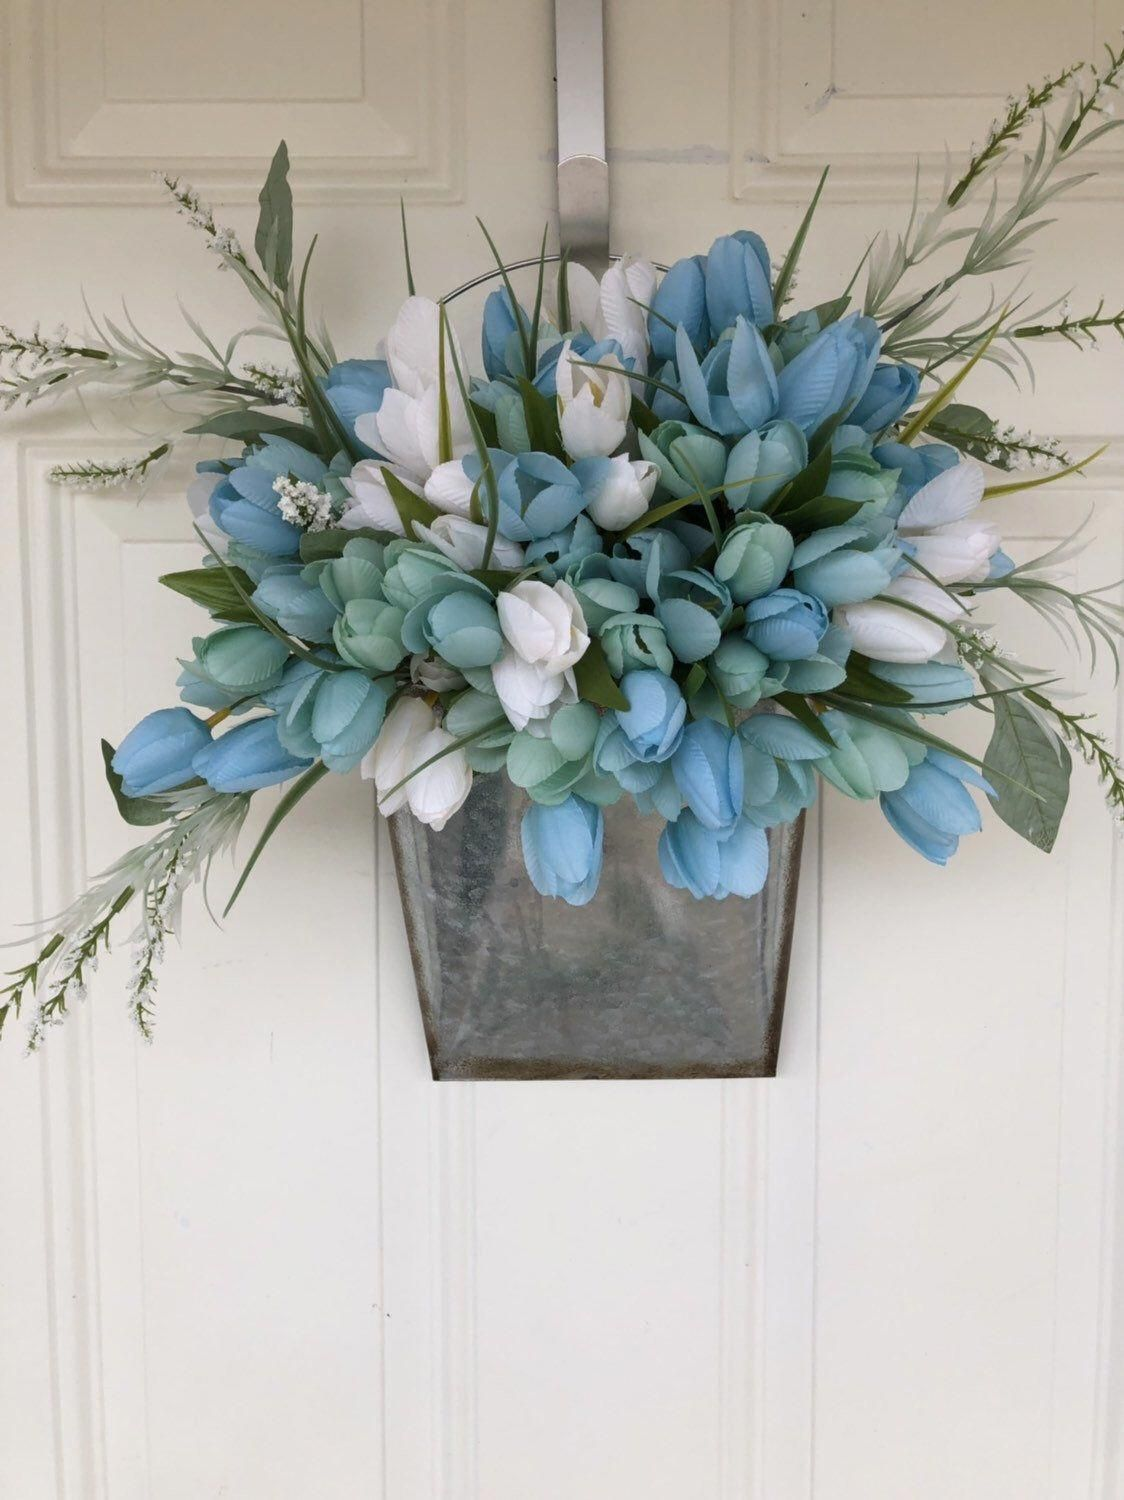 Excited to share this item from my #etsy shop: Tulip bucket, spring tulip wreath, spring tulip door bucket, tulip door arrangement #springDecorating